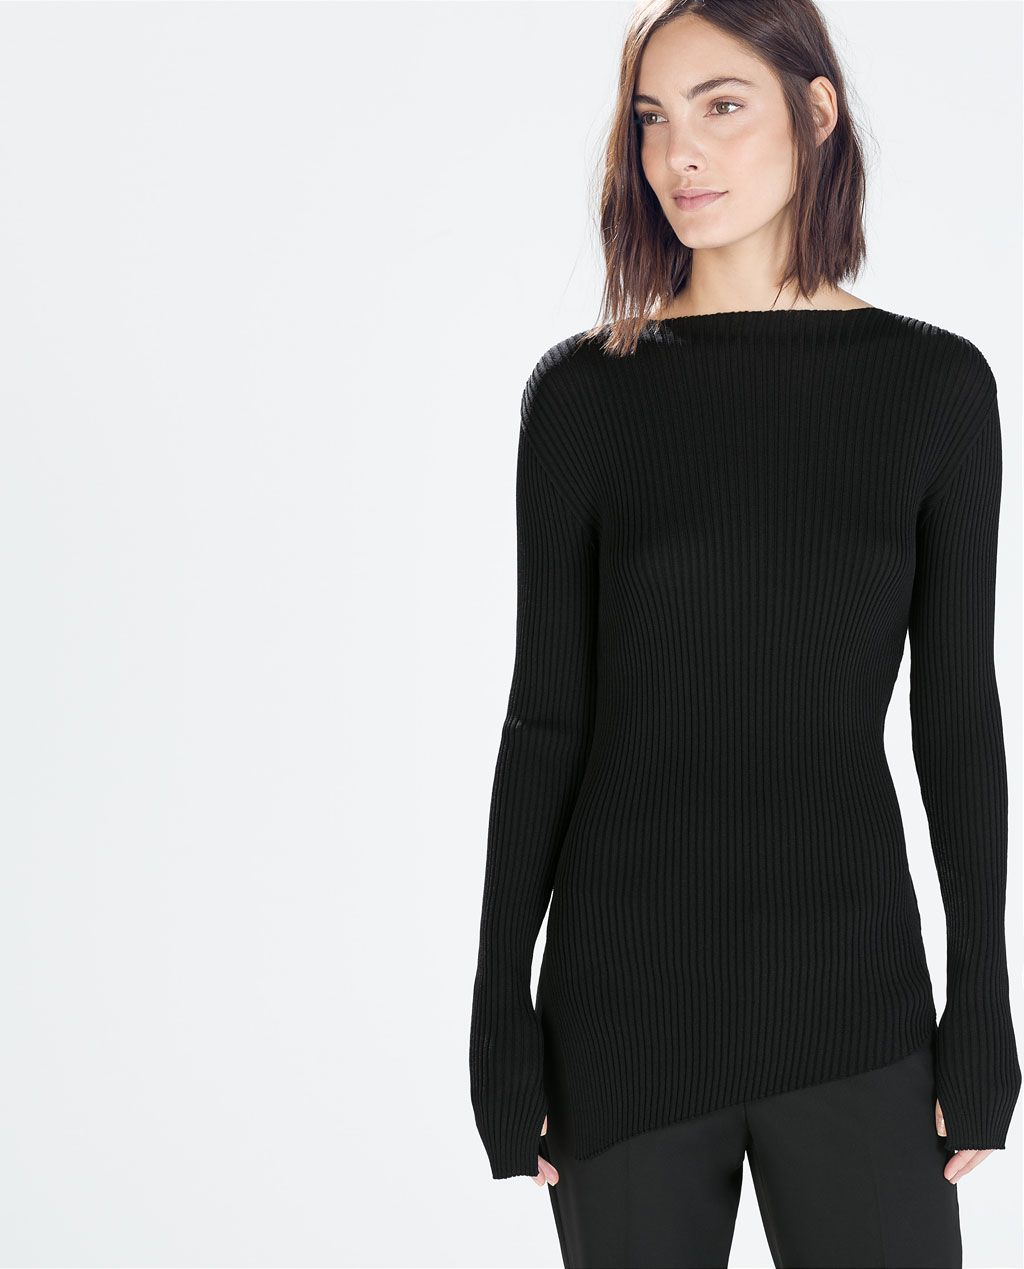 Image 2 of RIBBED BOAT NECK SWEATER from Zara   lace and knits ... d48752b736